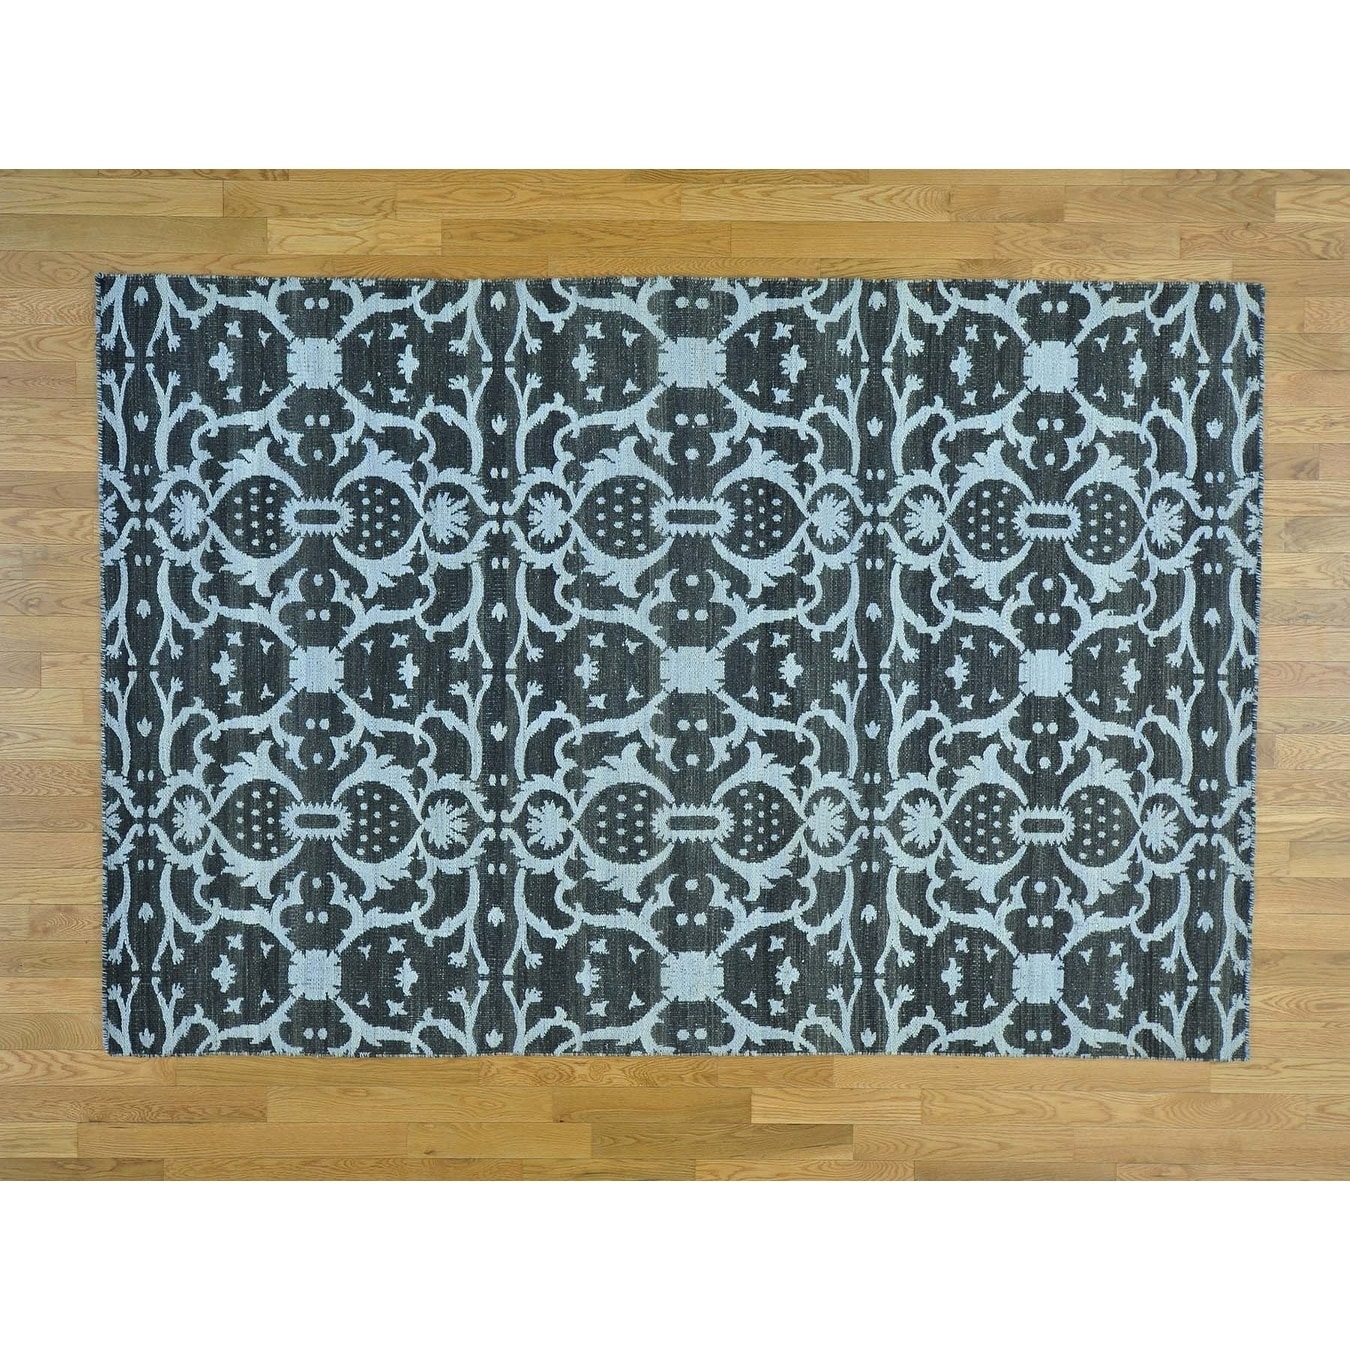 Hand Knotted Black Flat Weave with Cotton Oriental Rug - 510 x 88